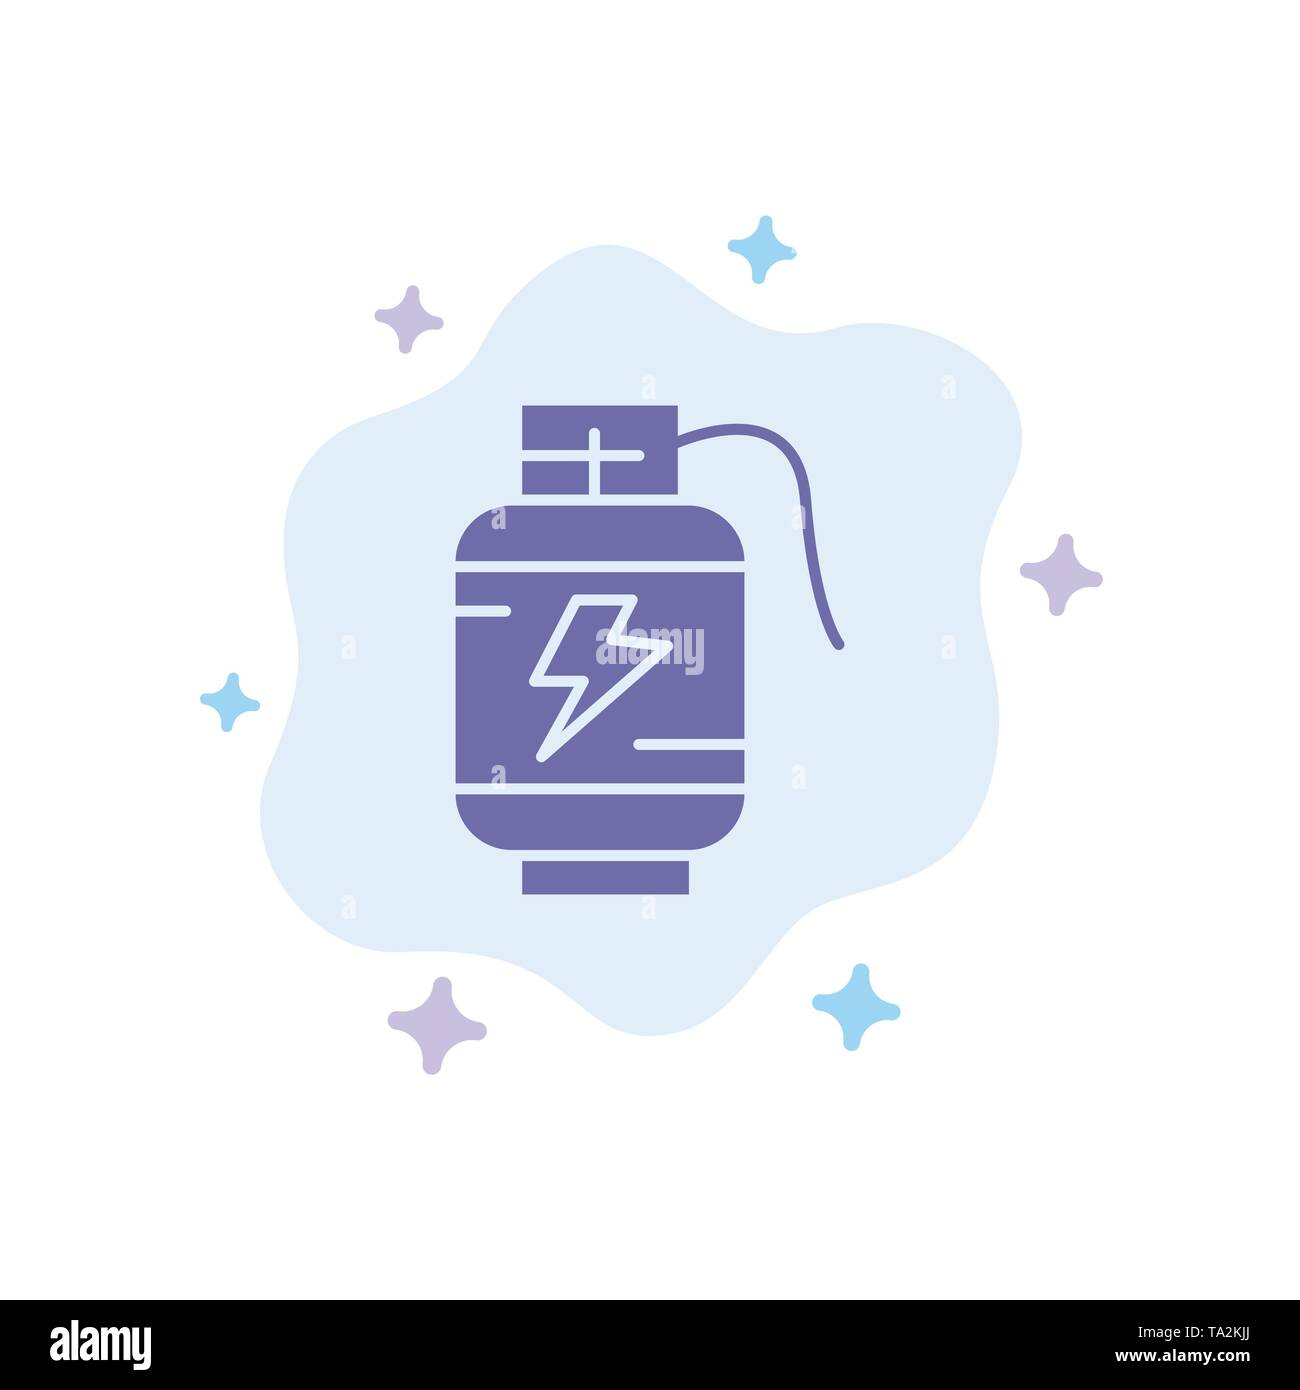 Accumulator, Battery, Power, Charge Blue Icon on Abstract Cloud Background - Stock Image